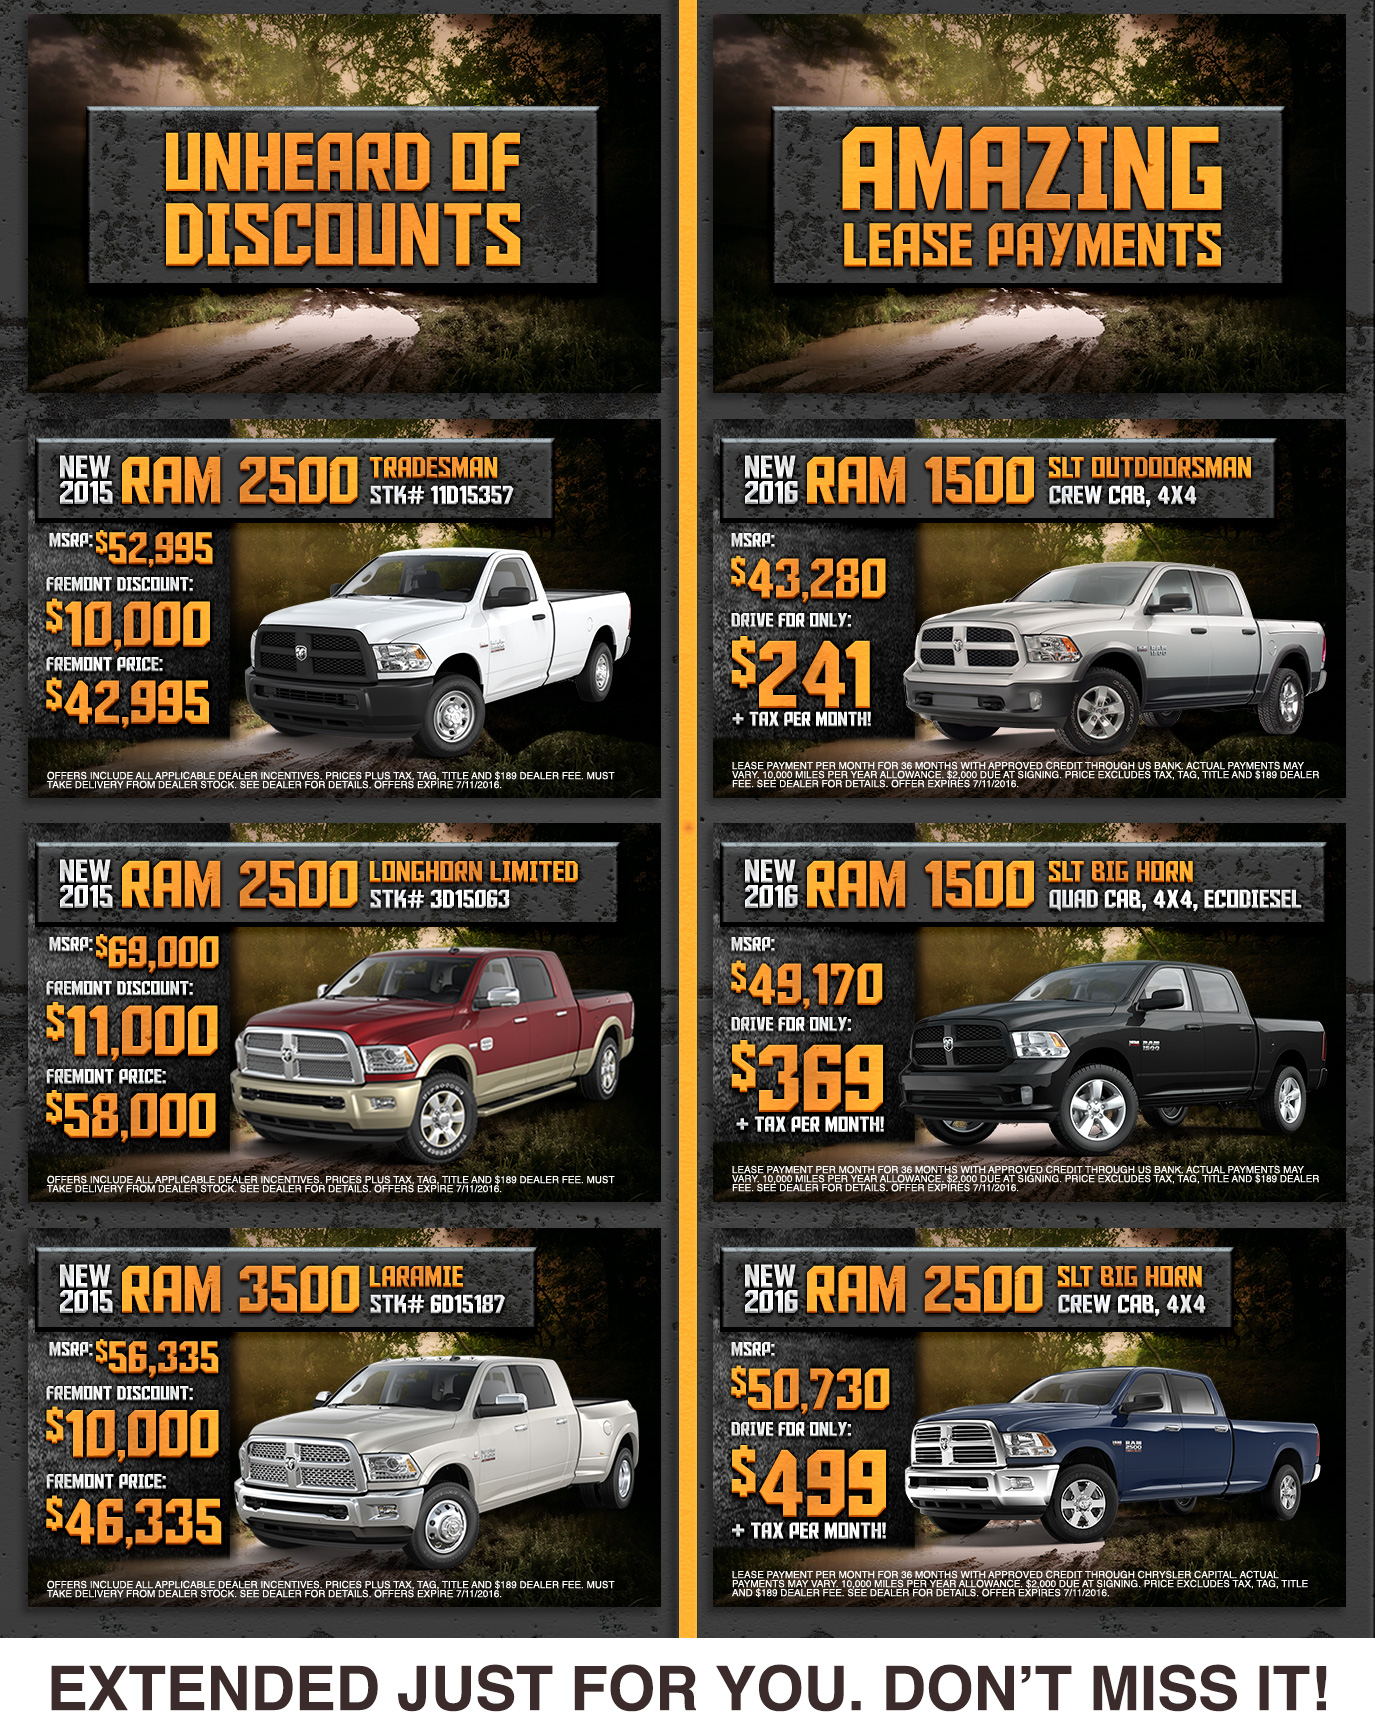 UNHEARD OF DISCOUNTS! New 2015 Ram 2500 Tradesman for $50,292, New 2015 Ram 2500 Longhorn Limited for $58,000, New 2015 Ram 3500 Laramie for $46,355, AMAZING LEASE PAYMENTS! New 2016 Ram 1500 SLT Outdoorsman or only $241 + tax per month!, New 2016 Ram 1500 SLT Big Horn for only $369 + tax per month! New 2016 Ram 2500 SLT Big Horn for only $499 + tax per month! Drive and Discover. EXTENDED JUST FOR YOU— DON'T MISS IT!